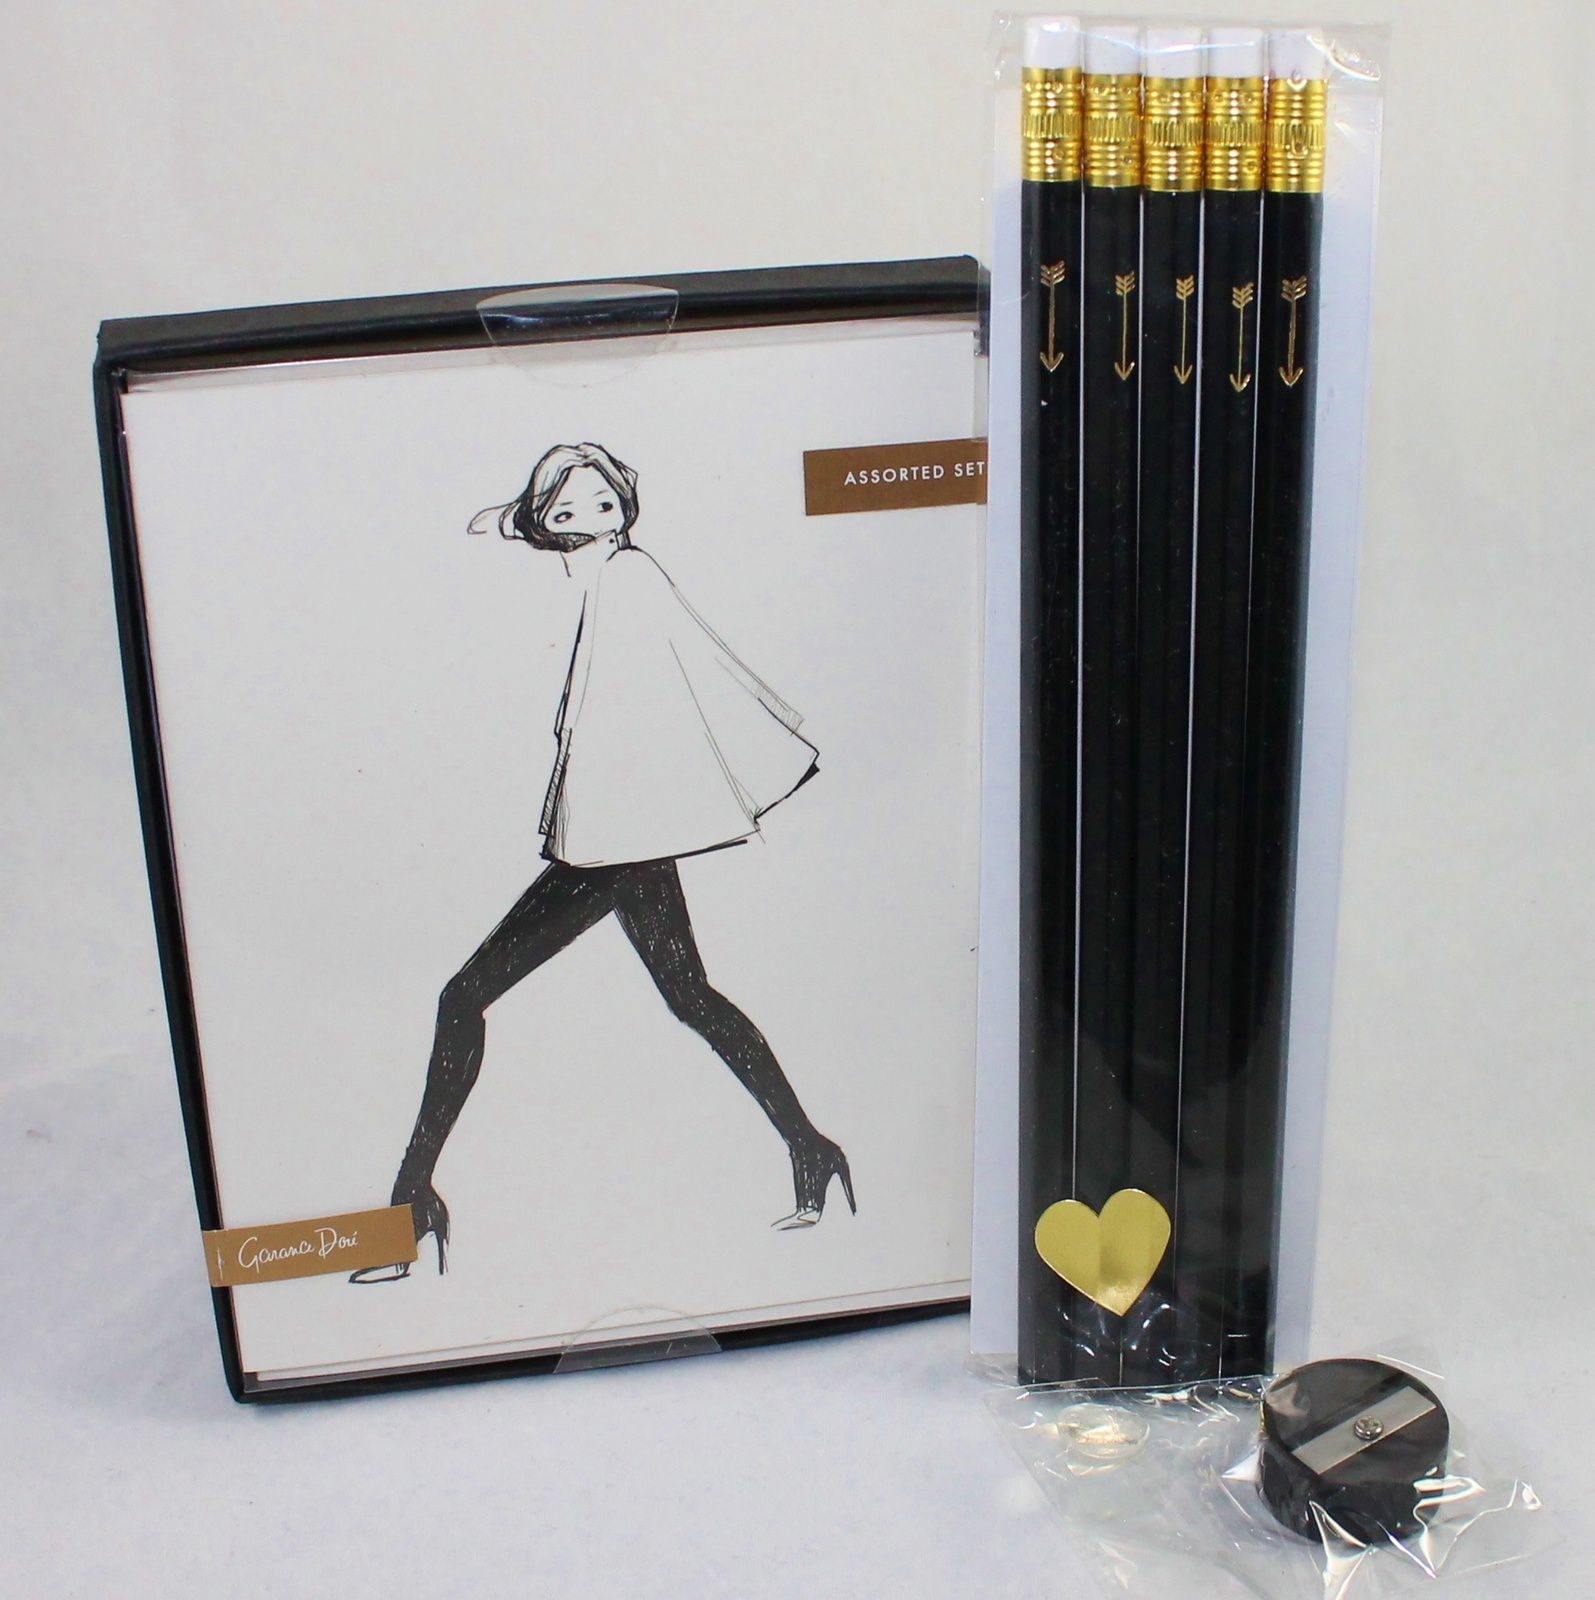 Rifle Paper Co. Garance Doré Assorted Girls Set & Letter C Design Gold Foil Arrow Pencils